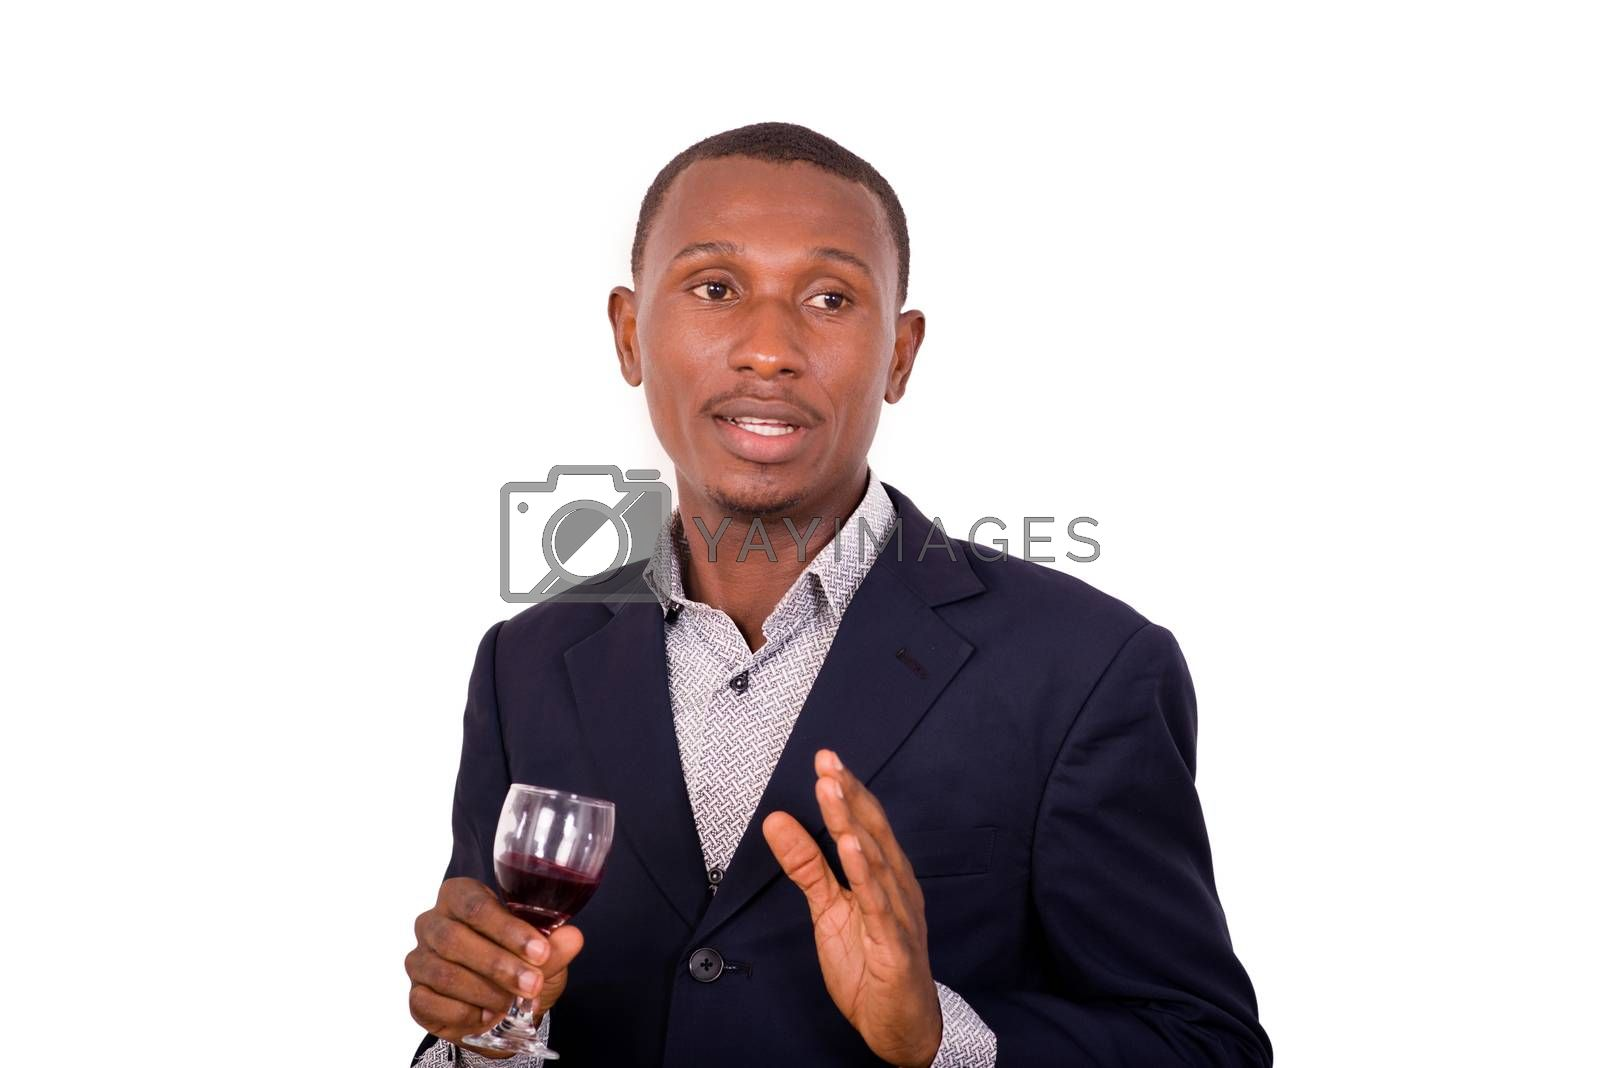 portrait of young happy businessman holding a glass of red wine isolated on white background.